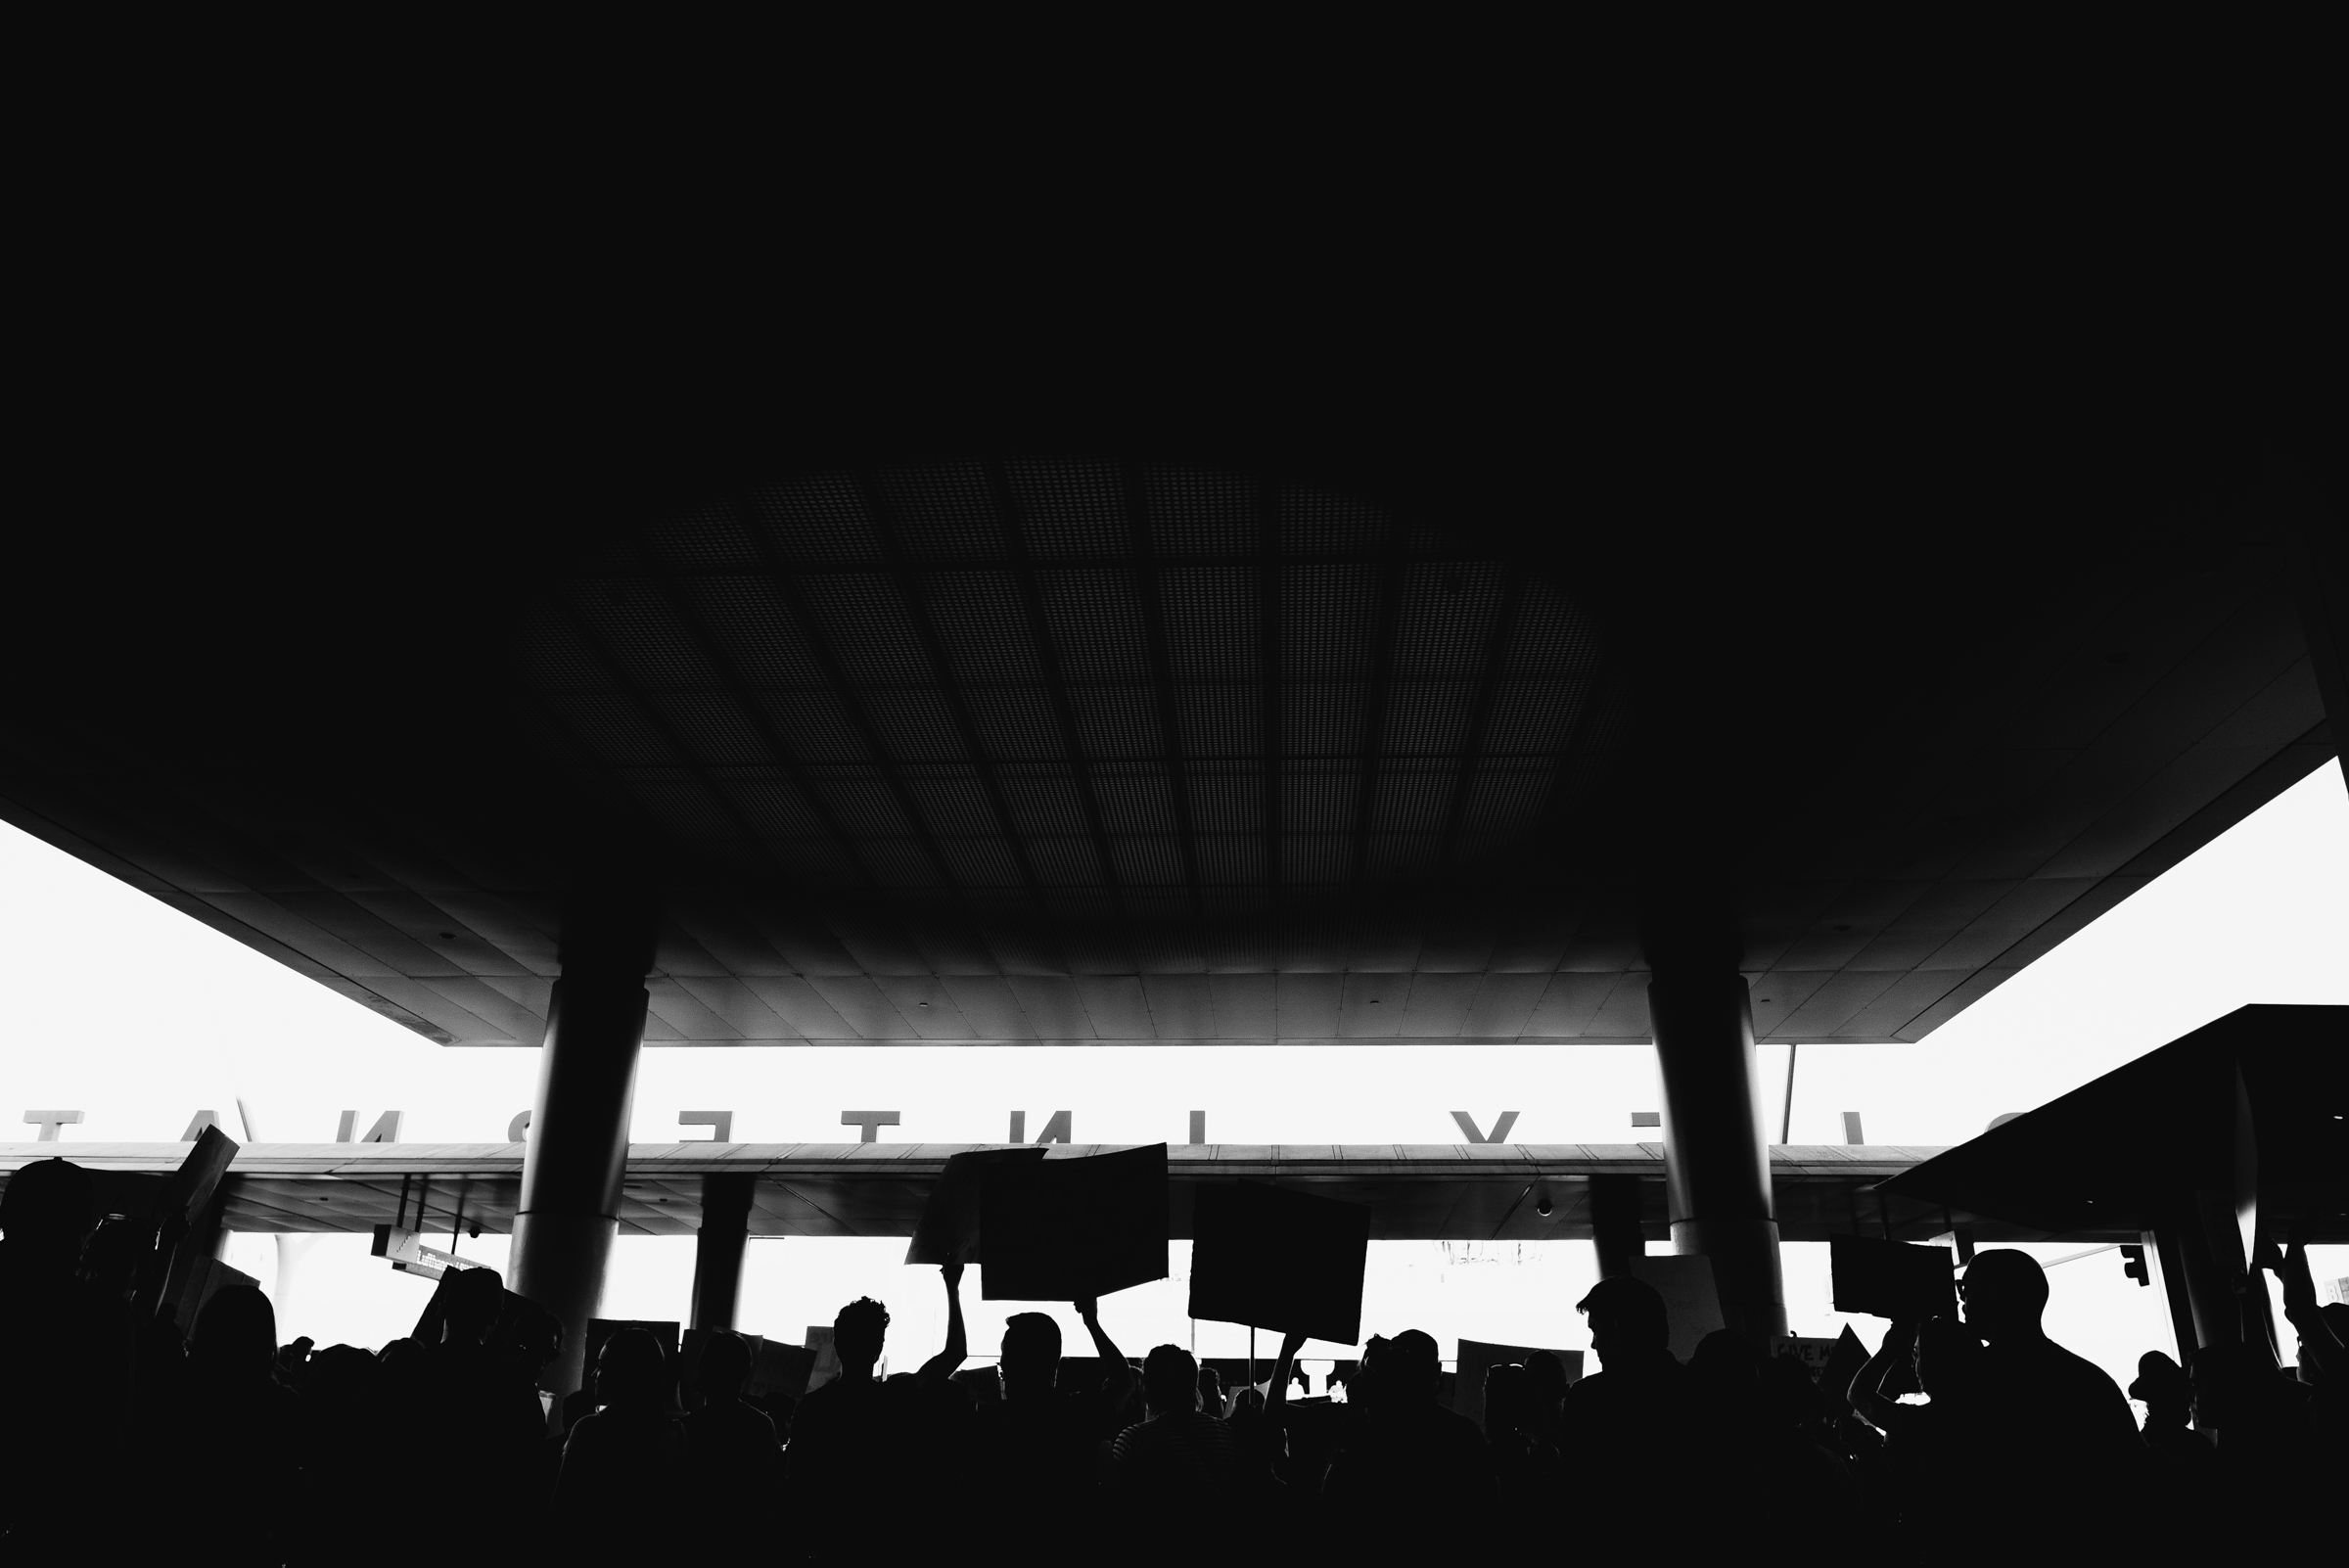 ©The Ryans Photography - LAX No Ban No Wall Protest-17.jpg